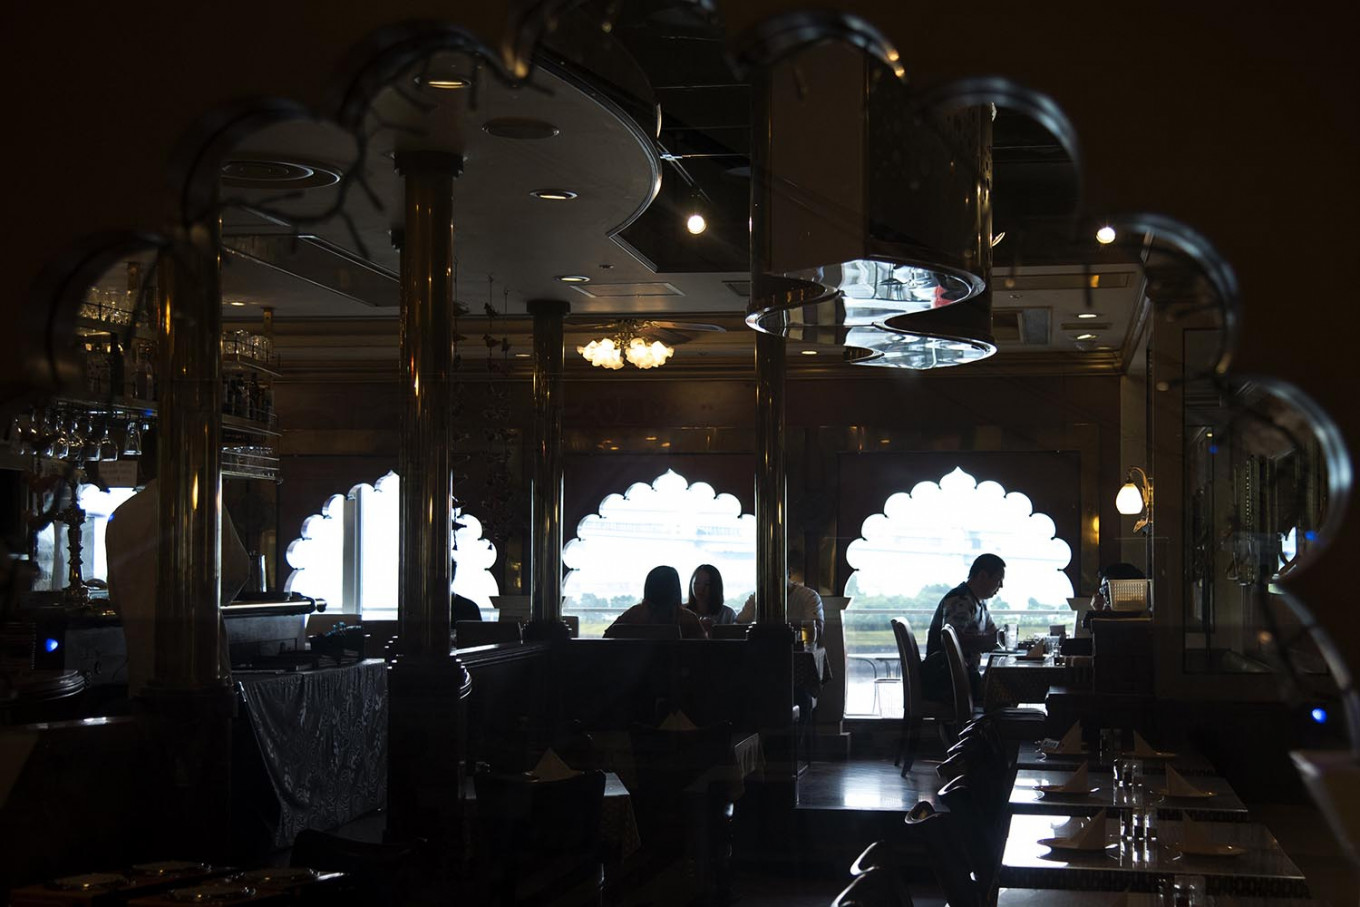 Some halal restaurants are decorated with Middle East ornaments as well as serving Middle East menu. JP/Rosa Panggabean